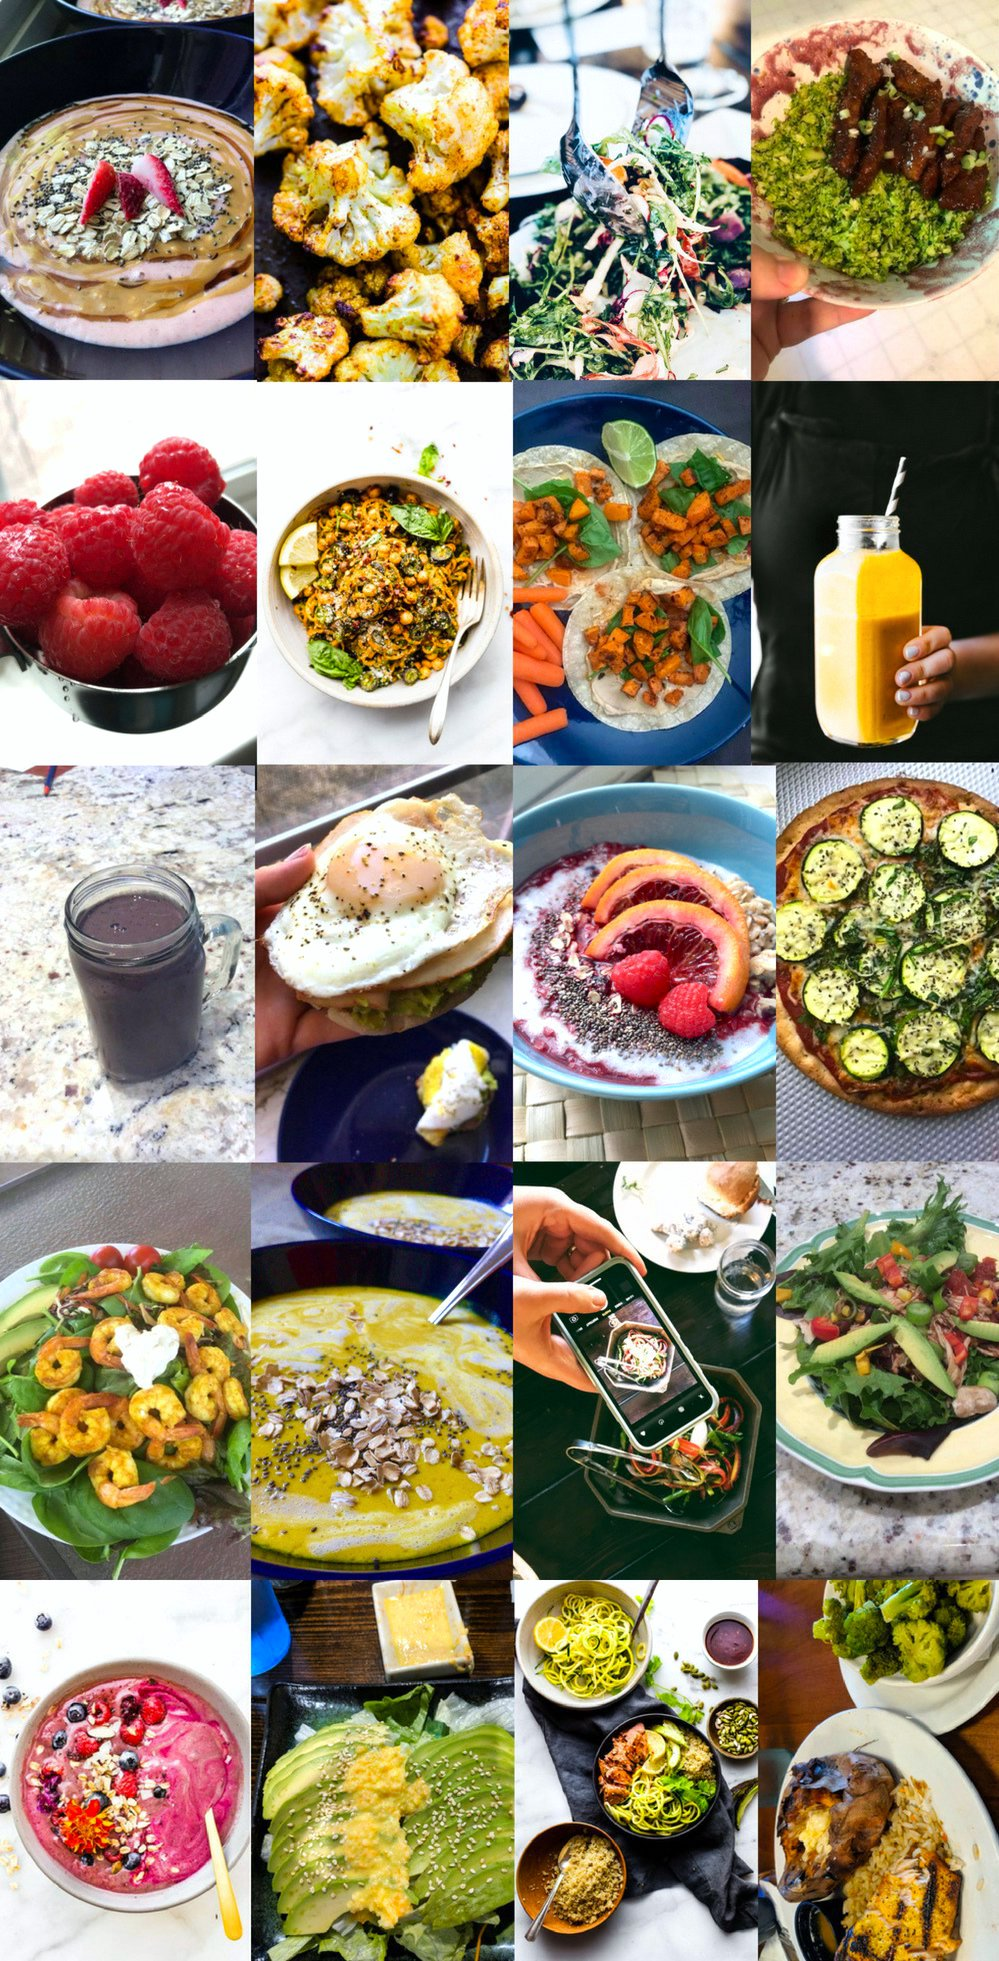 Superfoods Meal Plan Challenge - recap meals #mealplan #challenge #superfoods #glutenfree